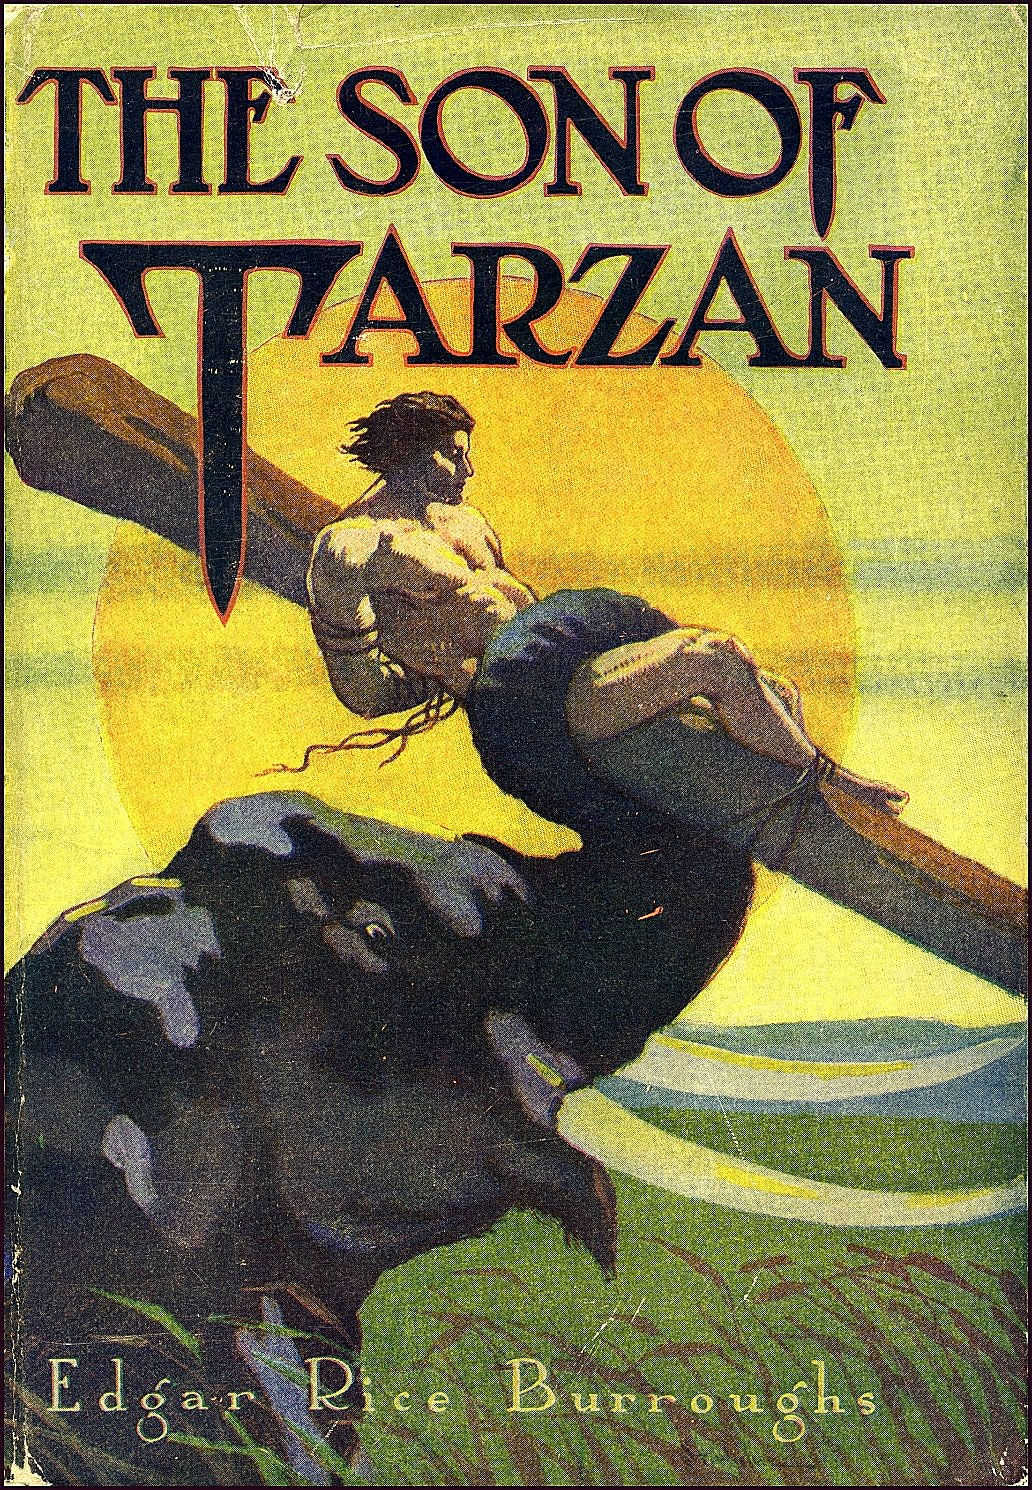 Image result for The son of tarzan